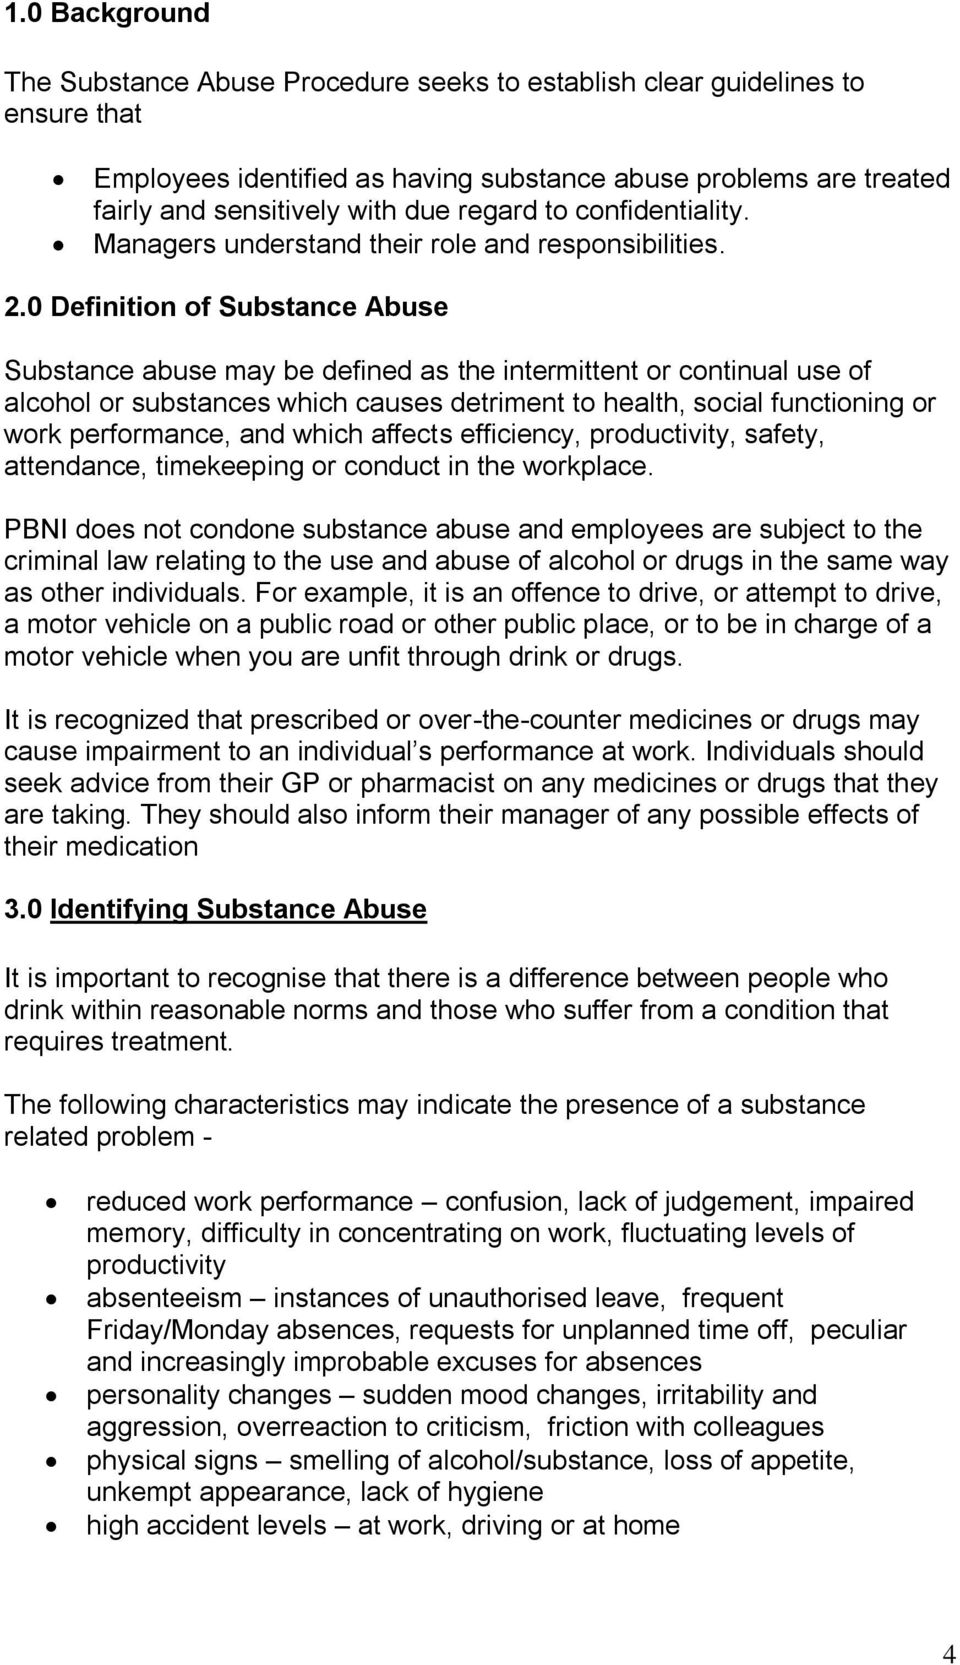 substance abuse procedure - pdf